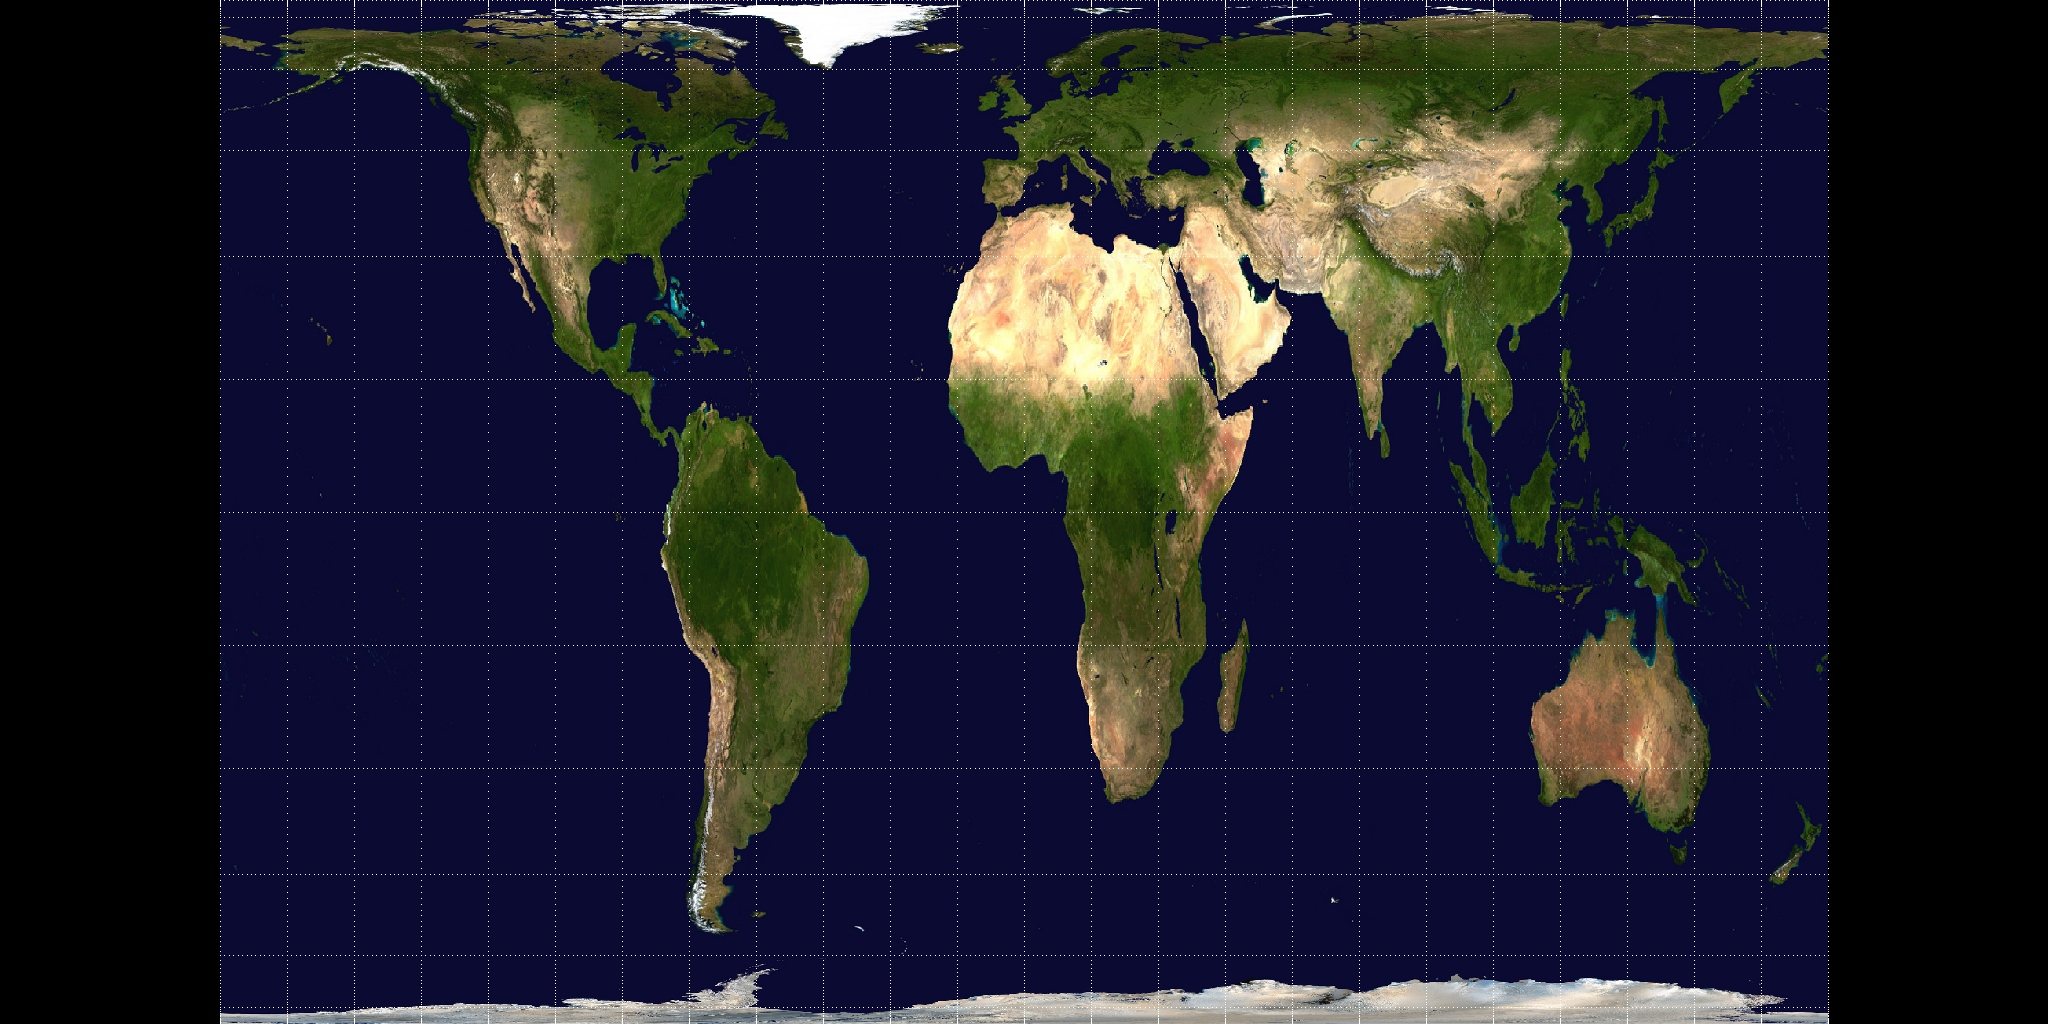 A Gall-Peters Projection of a visible Earth NASA Space Agency